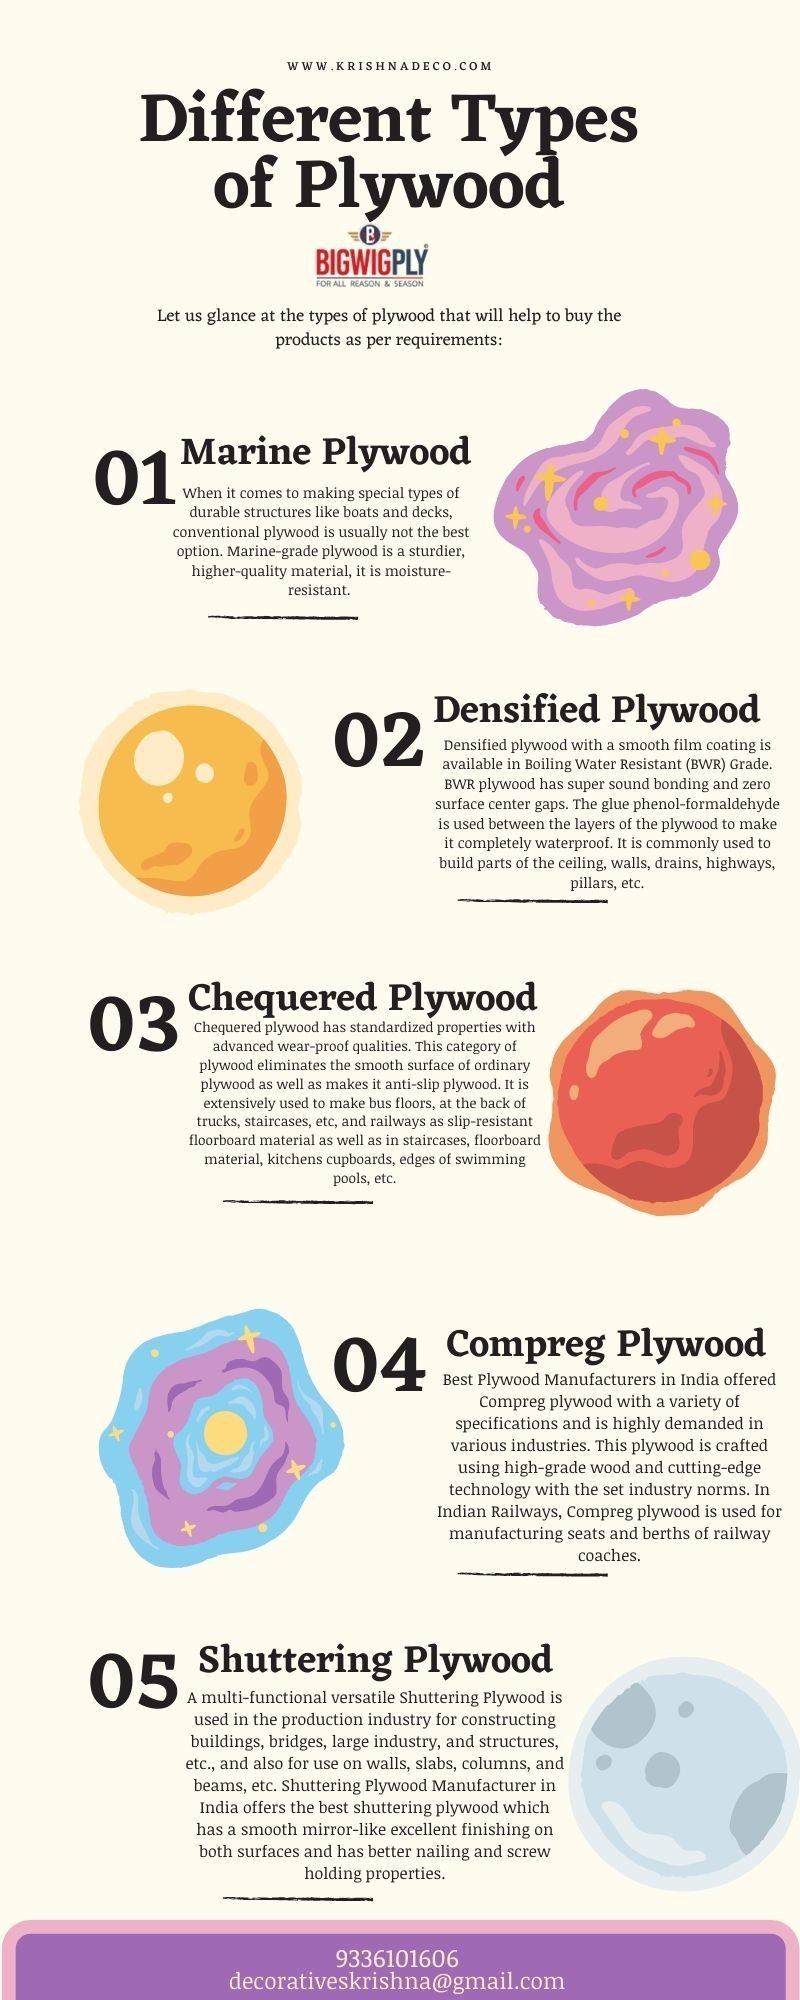 Different types of Plywood by best plywood manufacturers in India